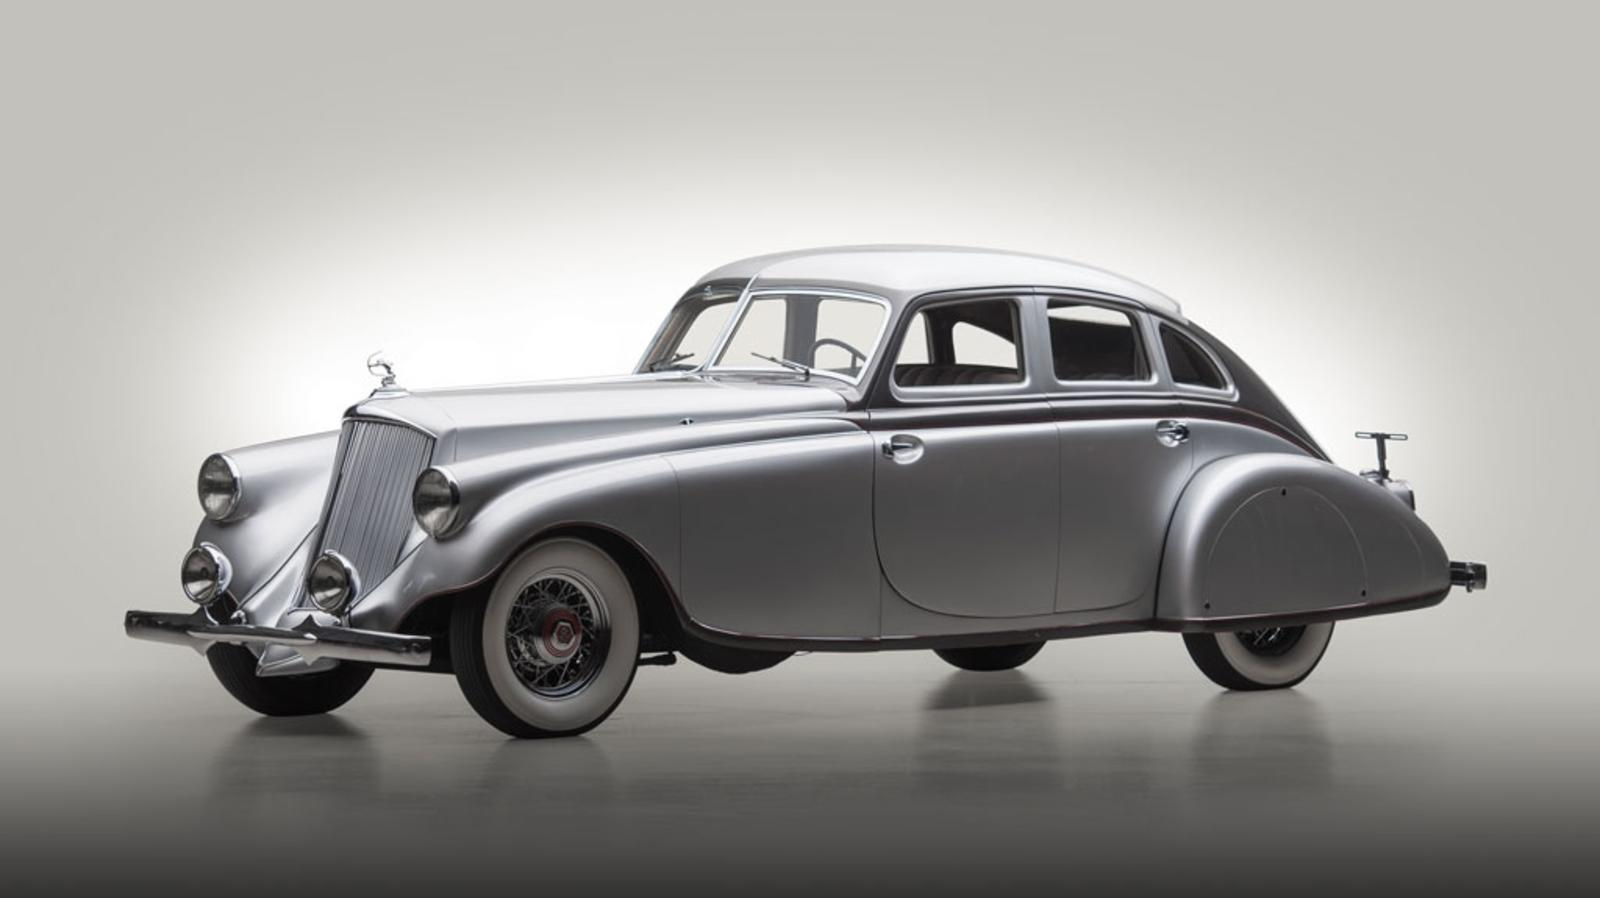 Who Makes Cadillac >> 1933 Pierce-Arrow Silver Arrow Review - Top Speed